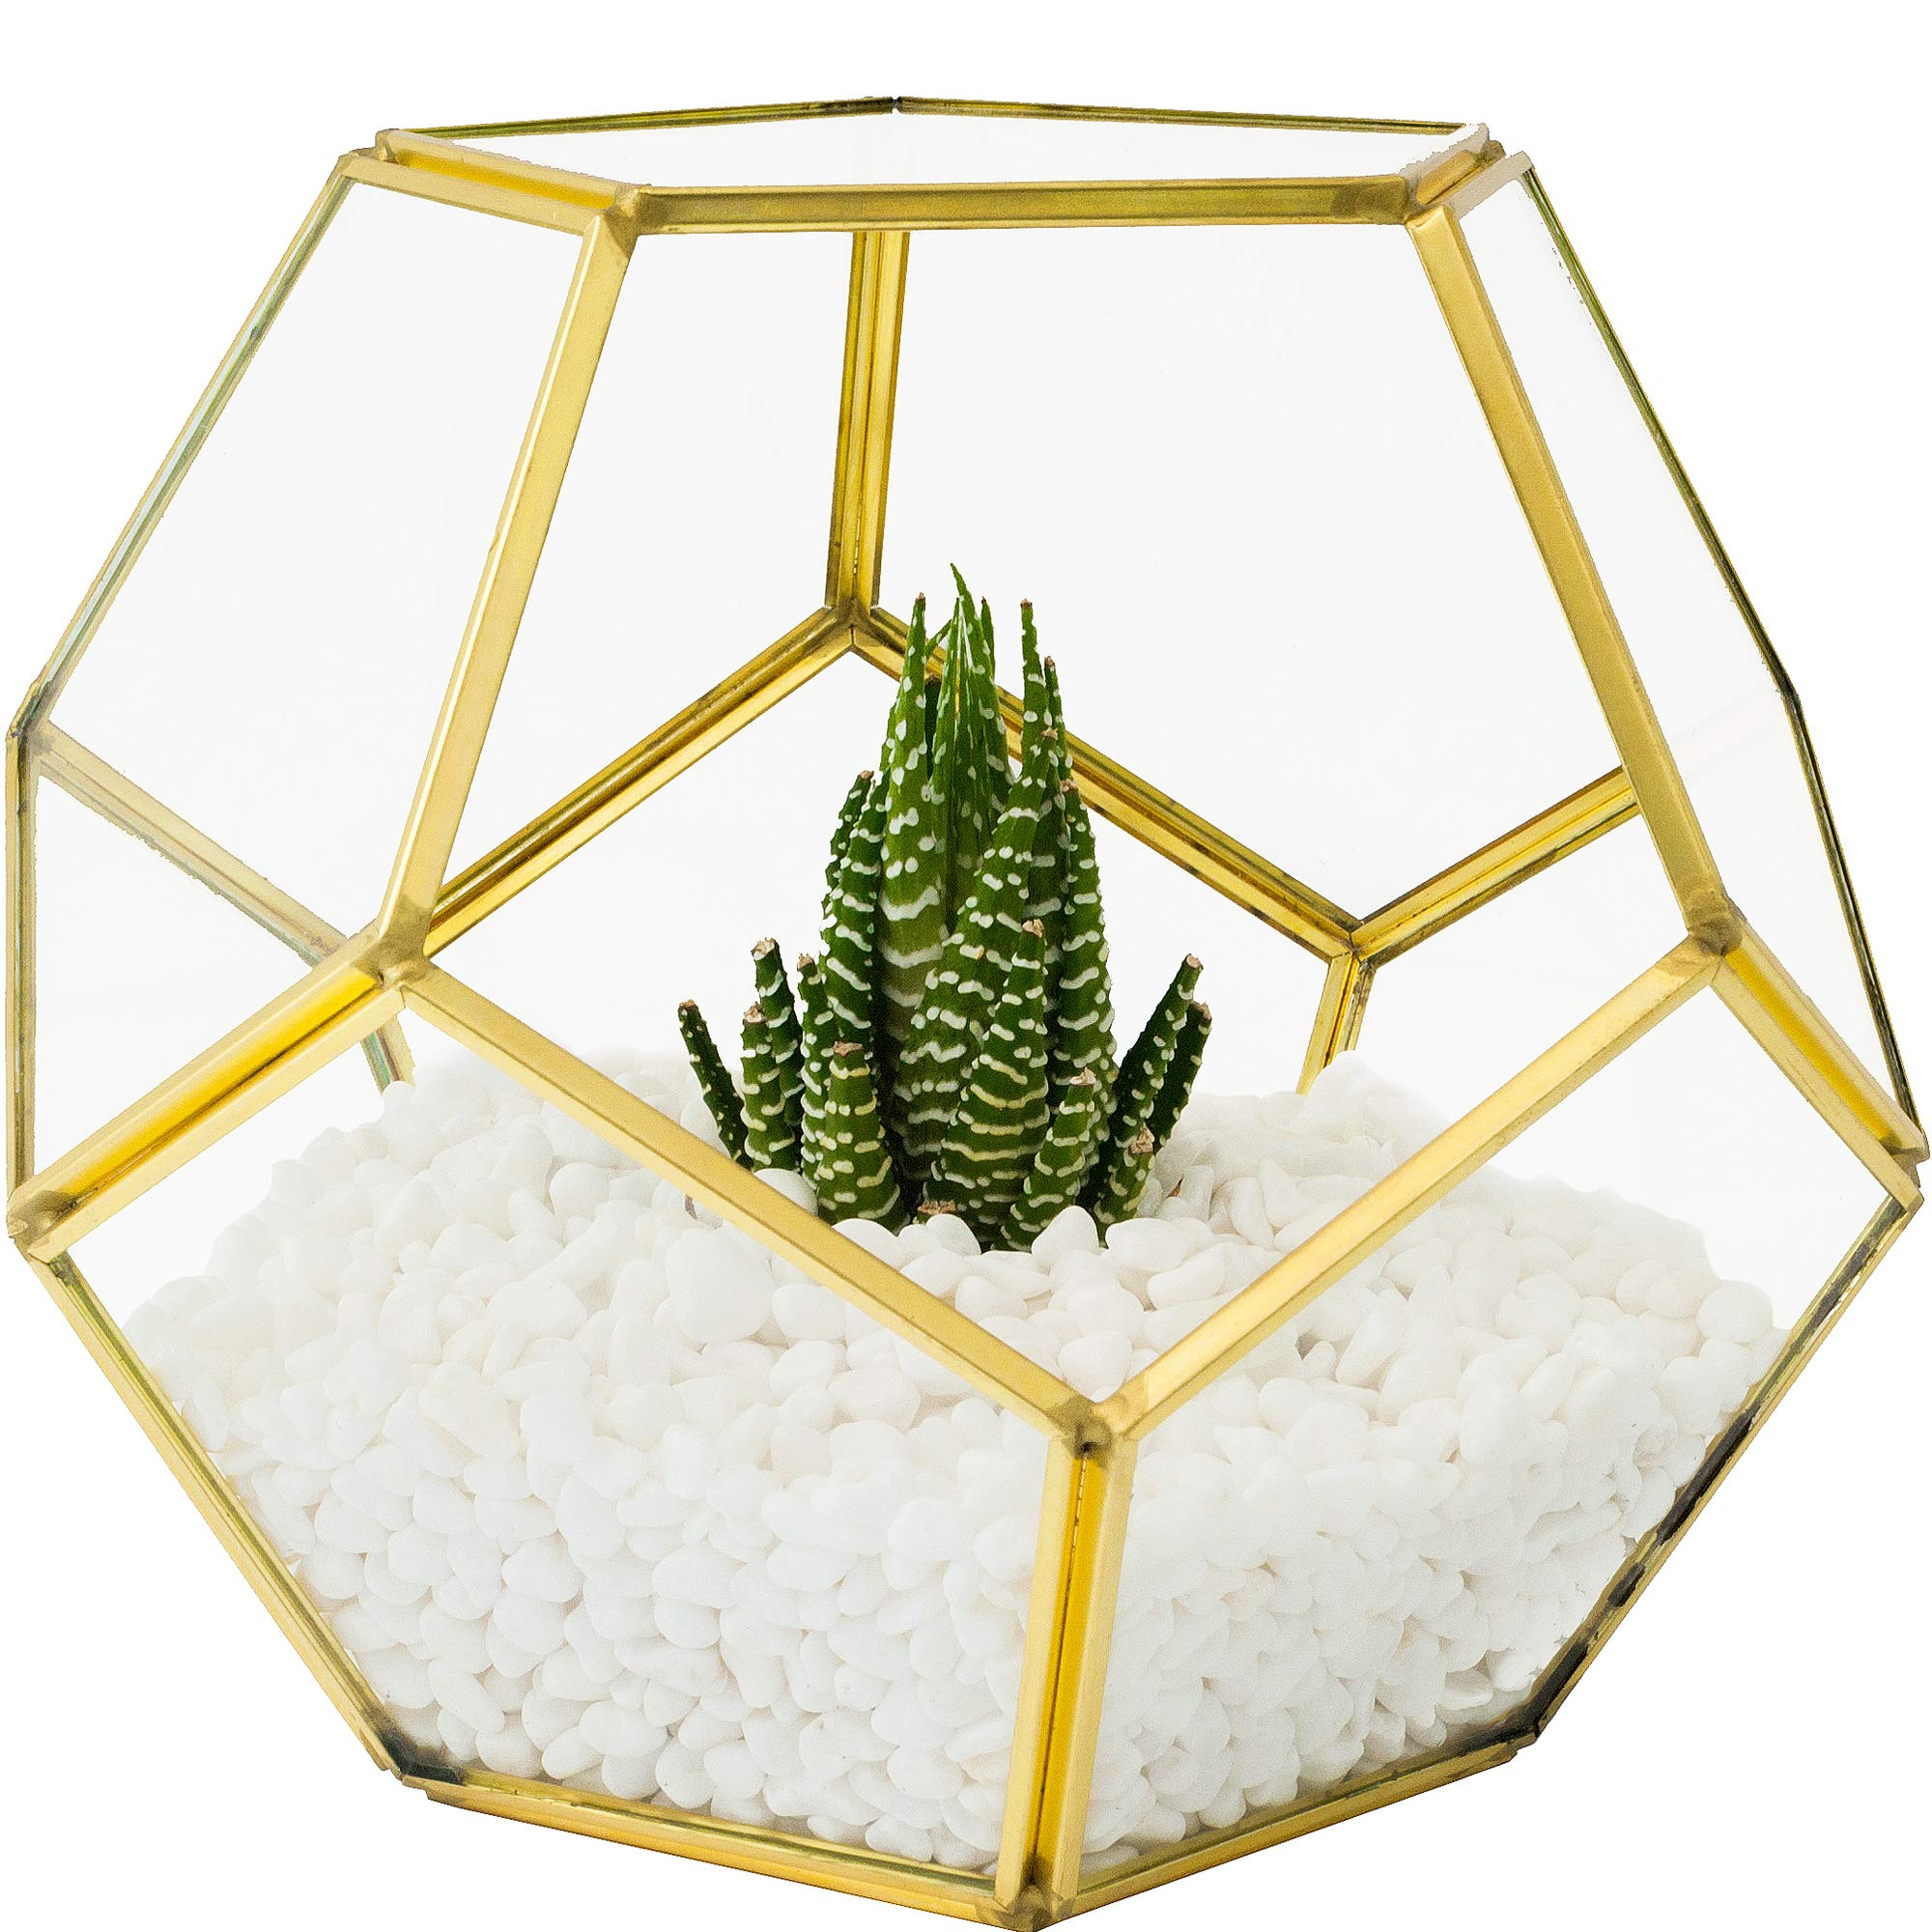 MOCTUS Glass Geometric Terrarium - Succulent Planter - Brass Container Box for Garden/Outdoor/Indoor/Home Decoration, Wedding Gift - Gold Pentagon Sphere Pot Holder for Display/Tabletop/Desktop by MOCTUS